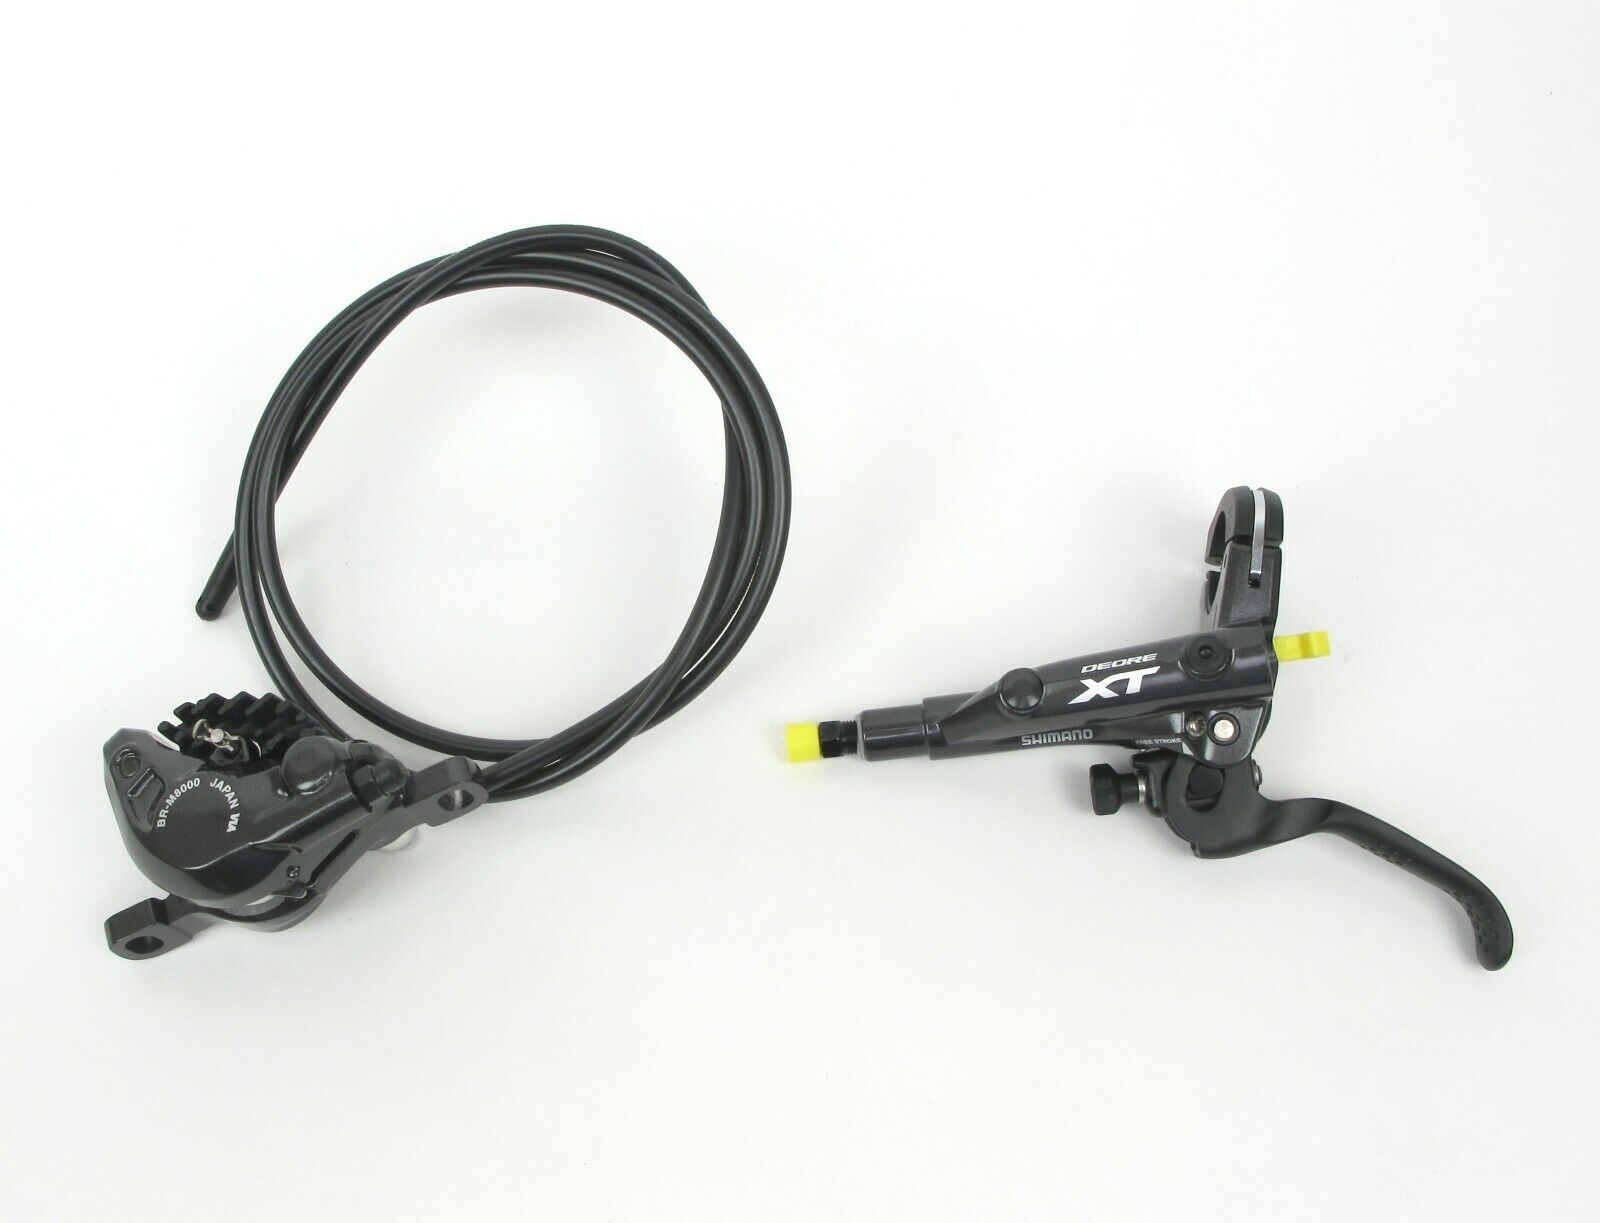 Details about  /Shimano Deore BL-M8000 BR-M8000 MTB Hydraulic Disc Brake Shifter Right Front